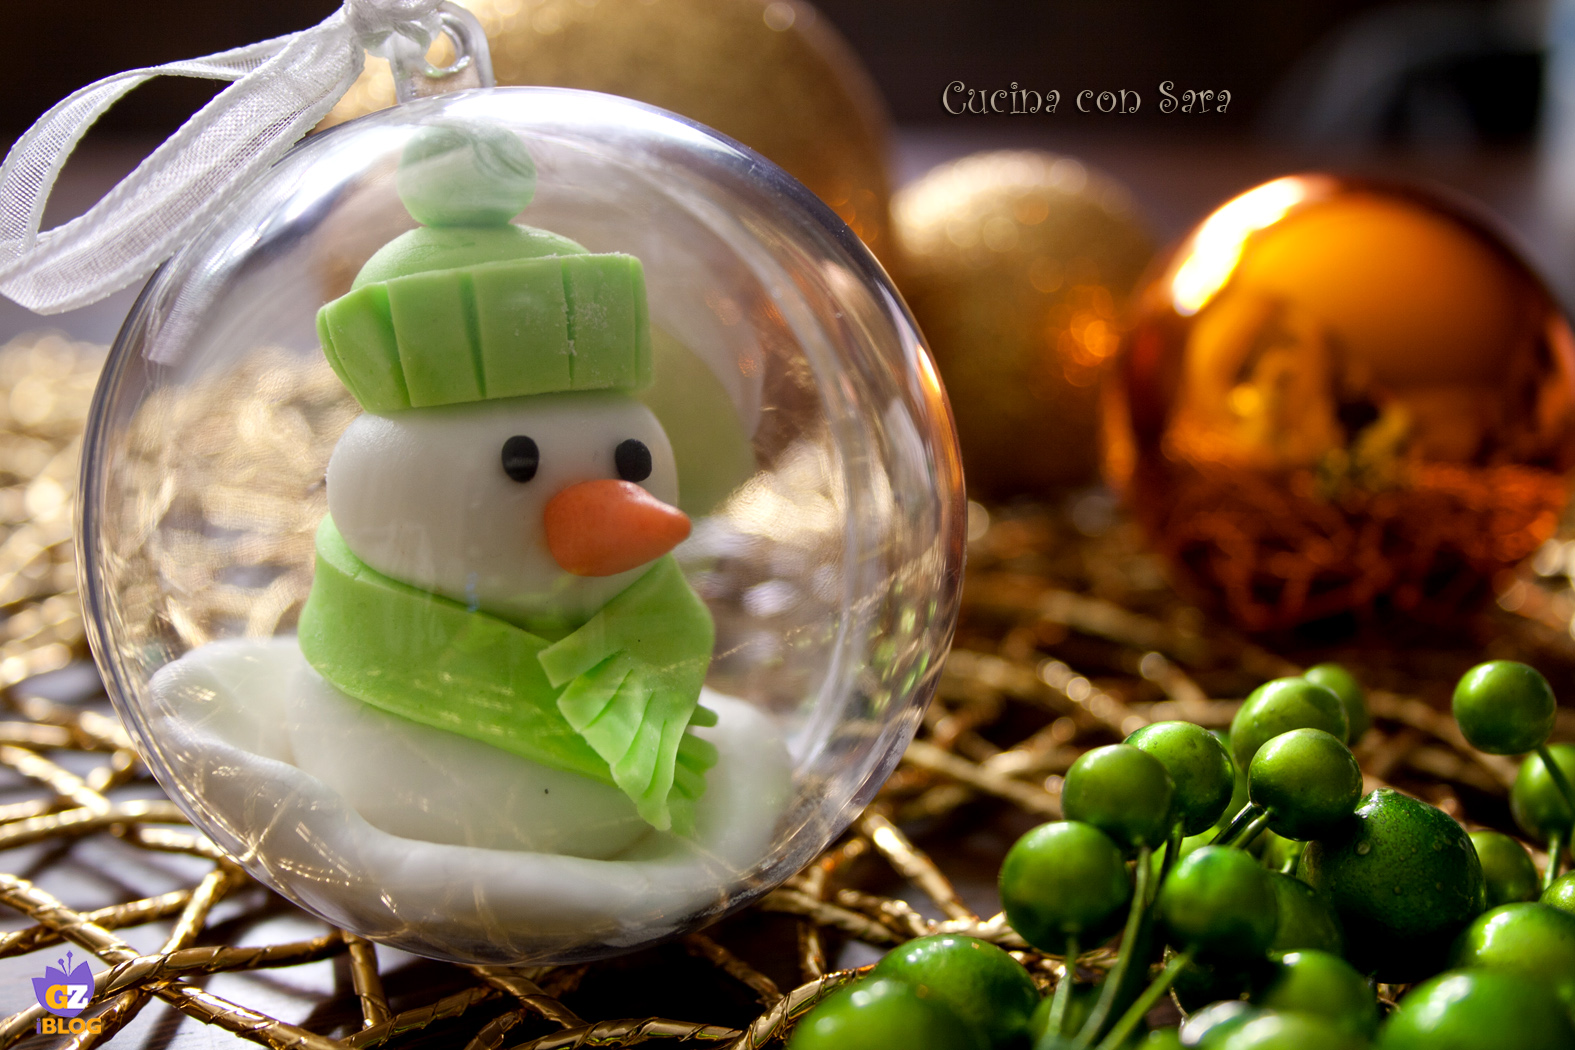 Palle Di Natale Decorate Con Tutorial CUCINA CON SARA